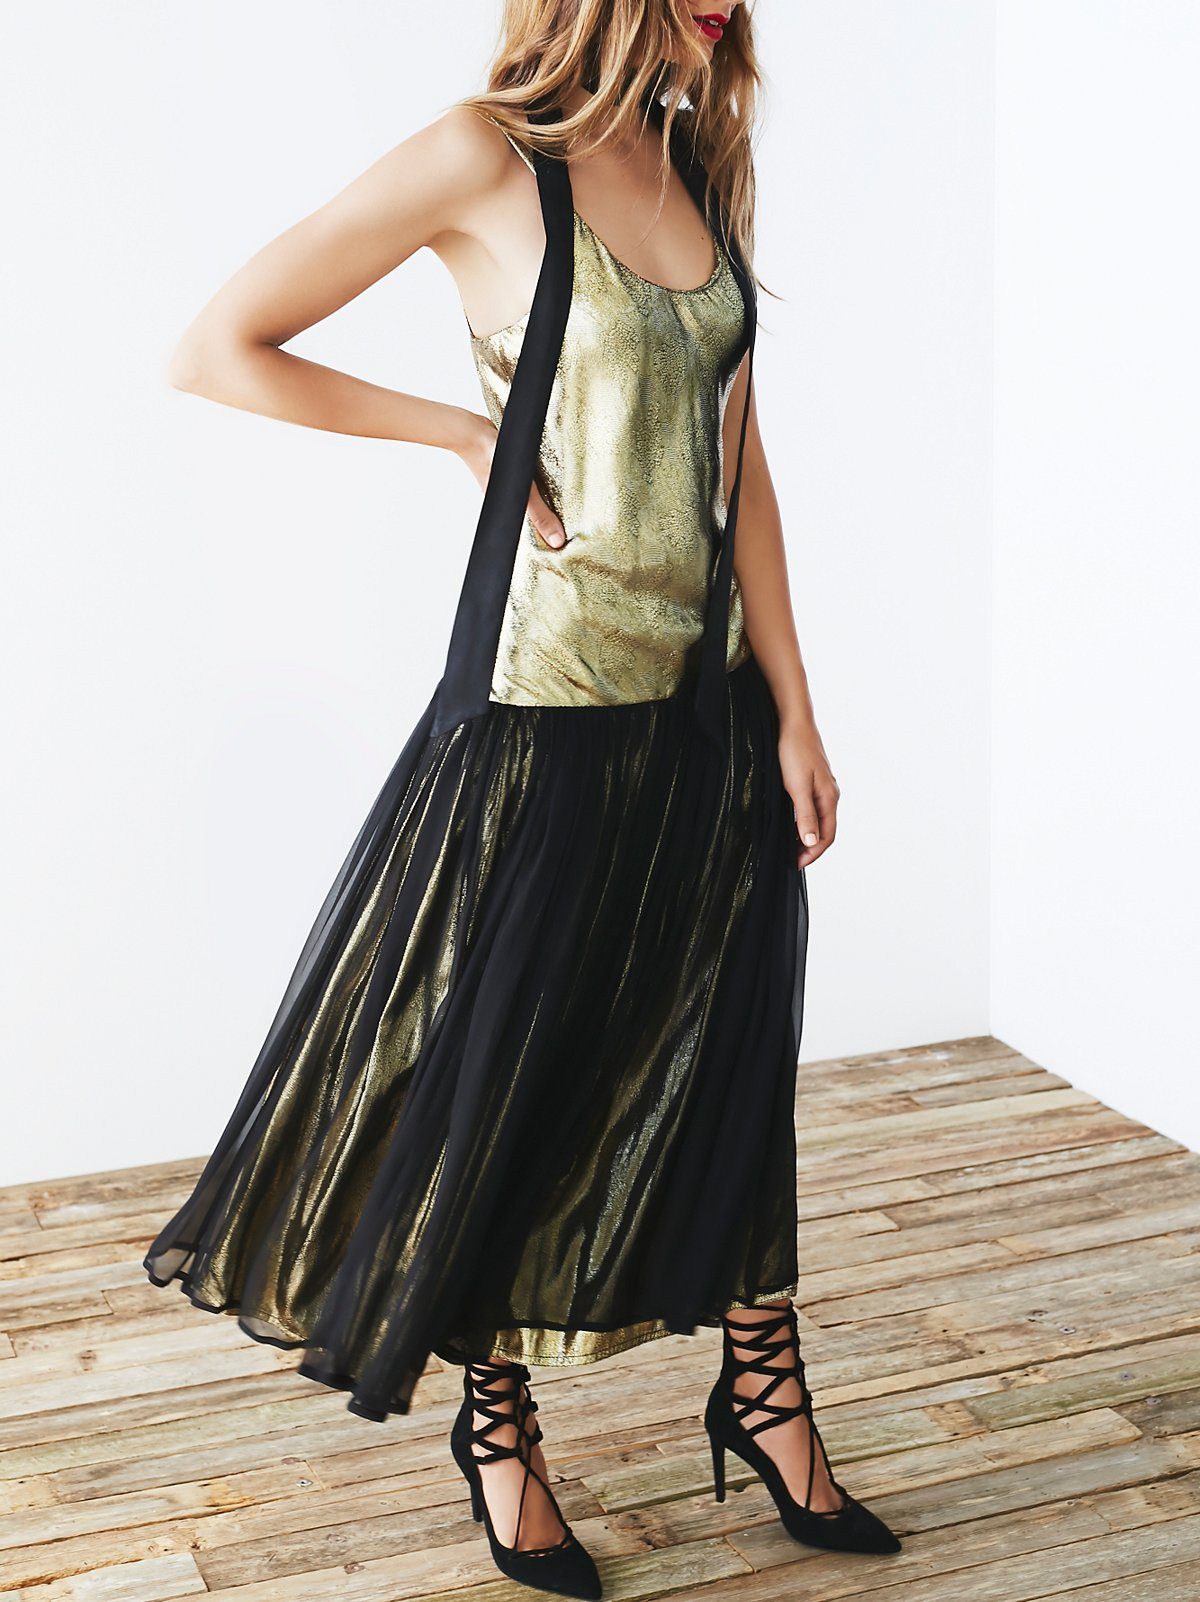 Vintage 1980s Metallic Dress